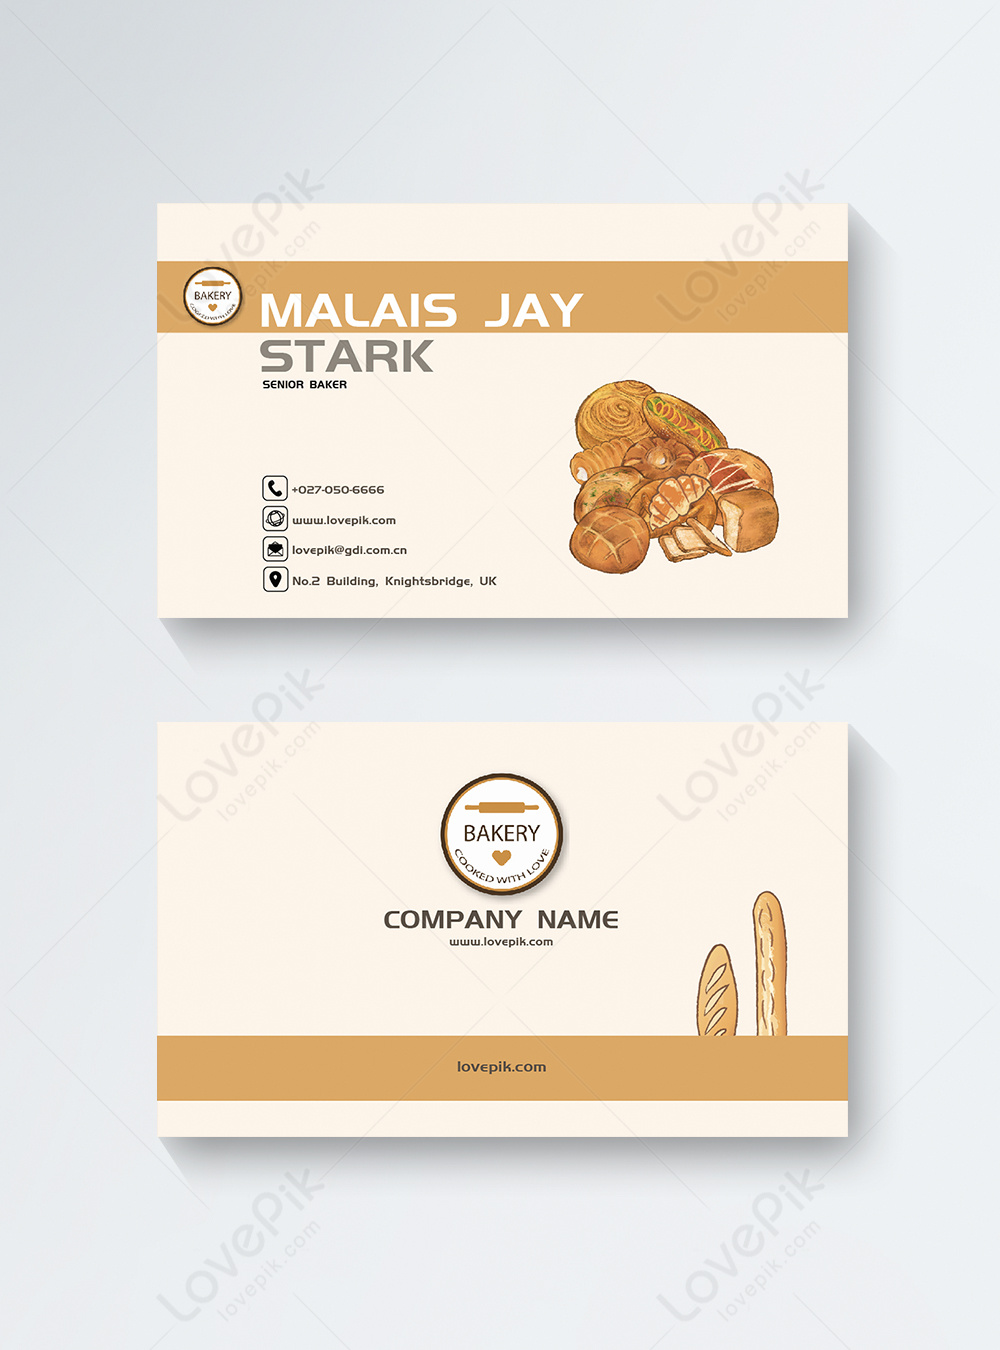 Bakery Business Cards Template Image Picture Free Download 450000351 Lovepik Com